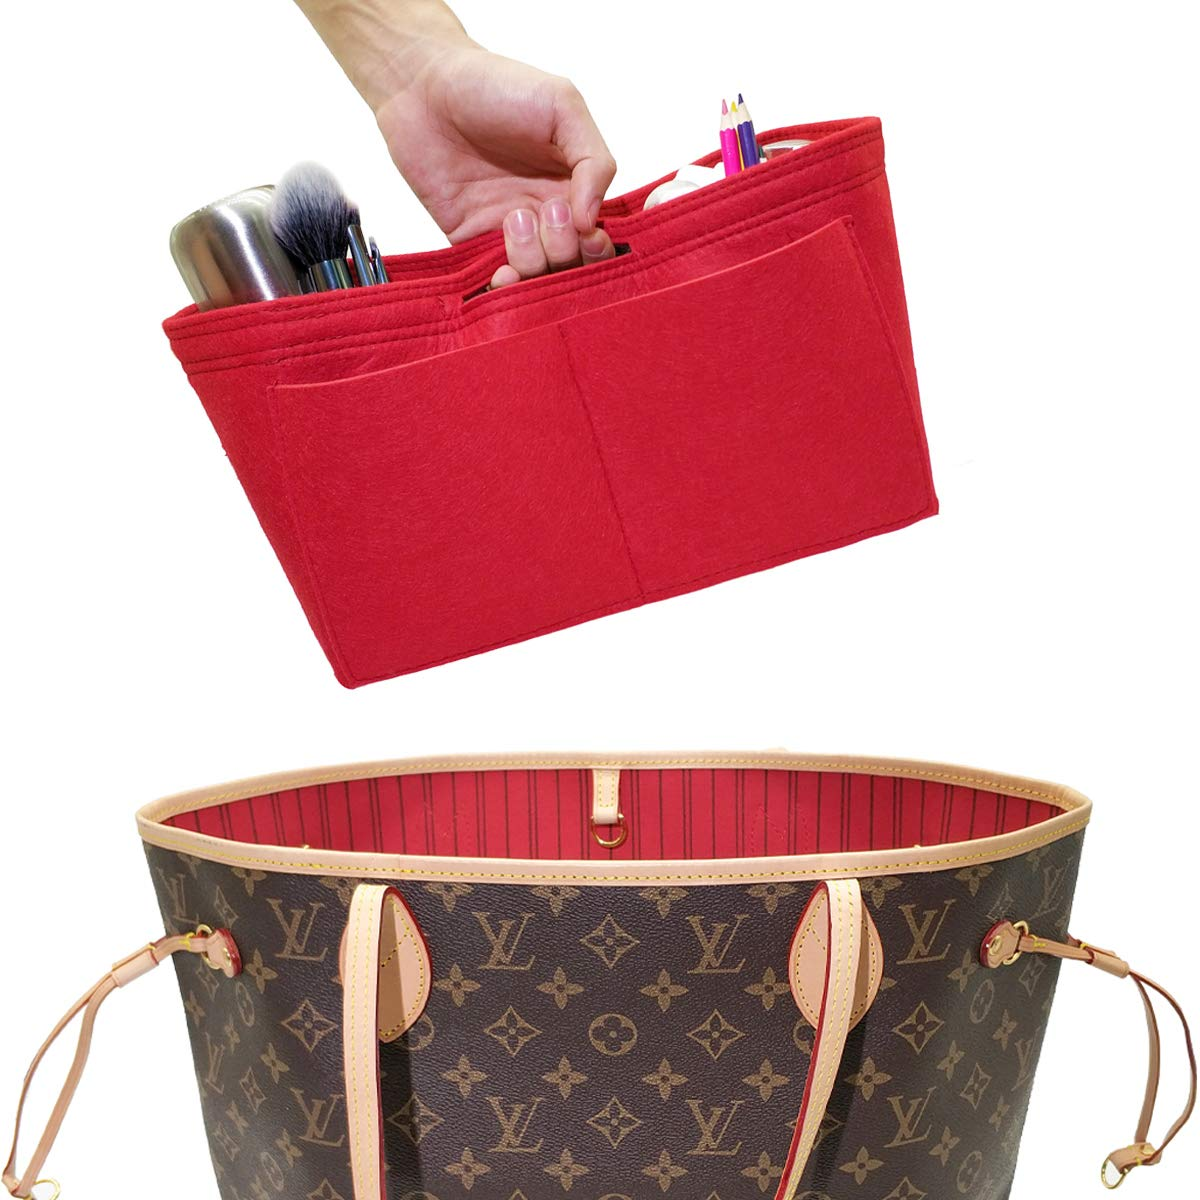 LEXSION Felt Handbag Insert Organizer Bag In Bag with Two Removeable Holder Red Large